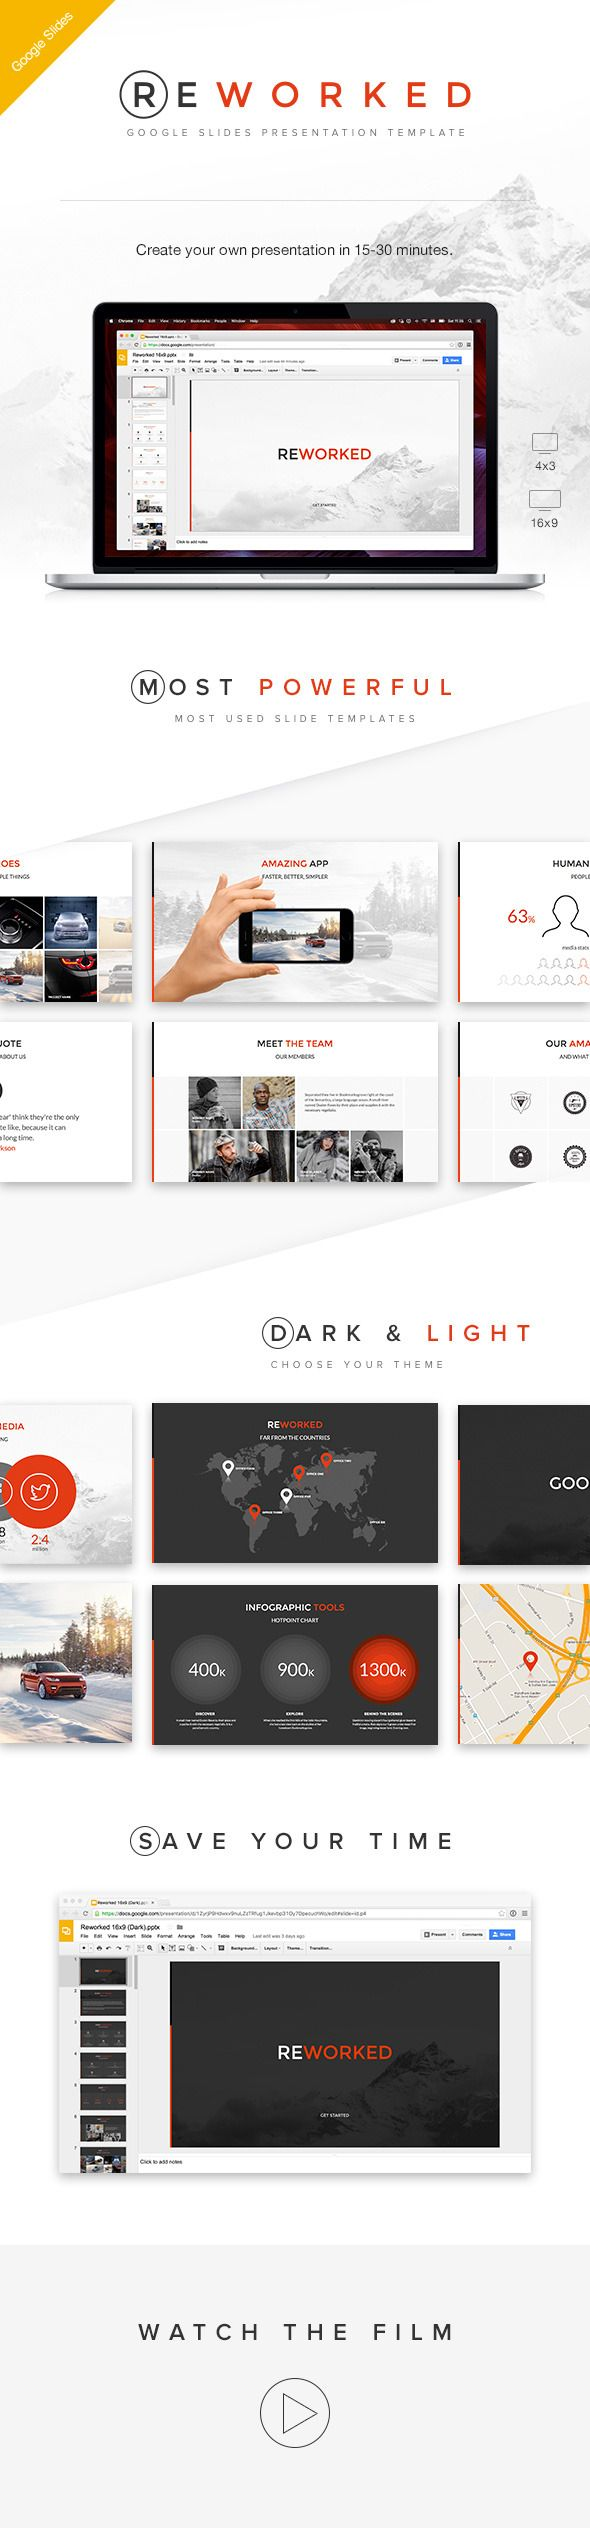 Reworked Google Slides Presentation Template - Google Slides Presentation Templates #ad